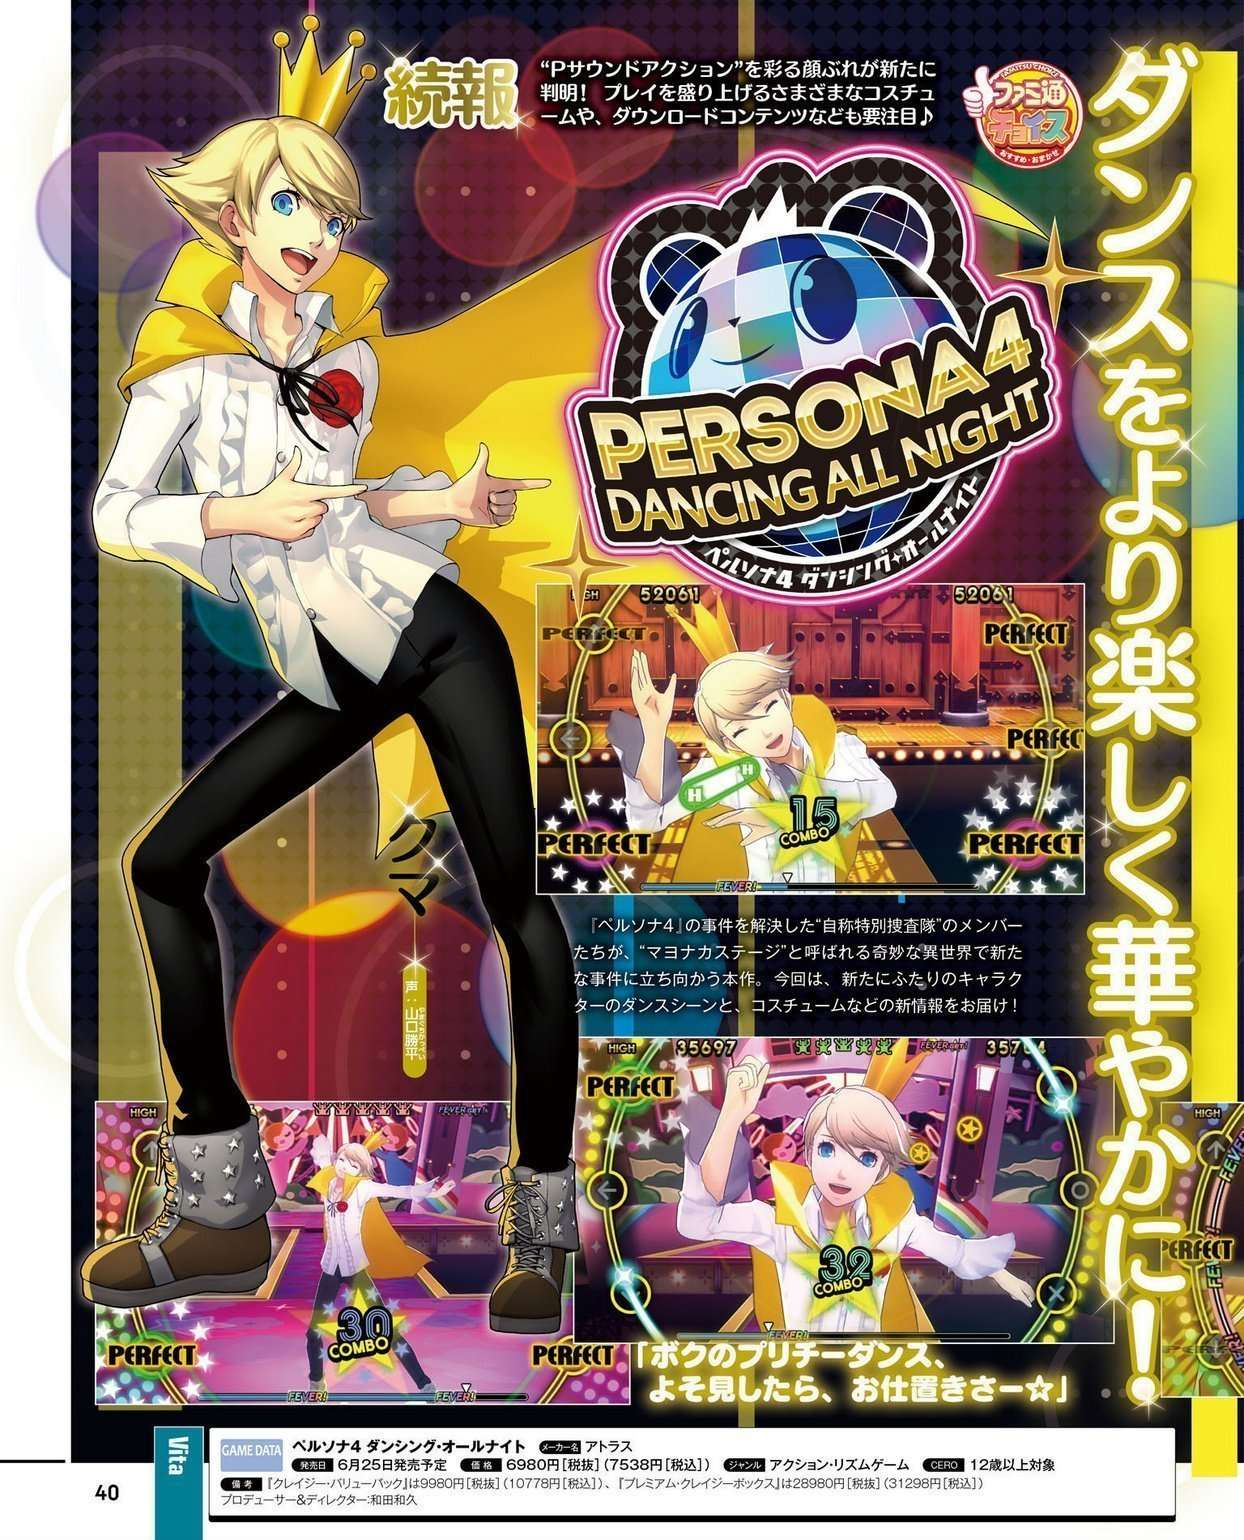 Human Teddie in Persona 4: Dancing All Night from Famitsu scans.